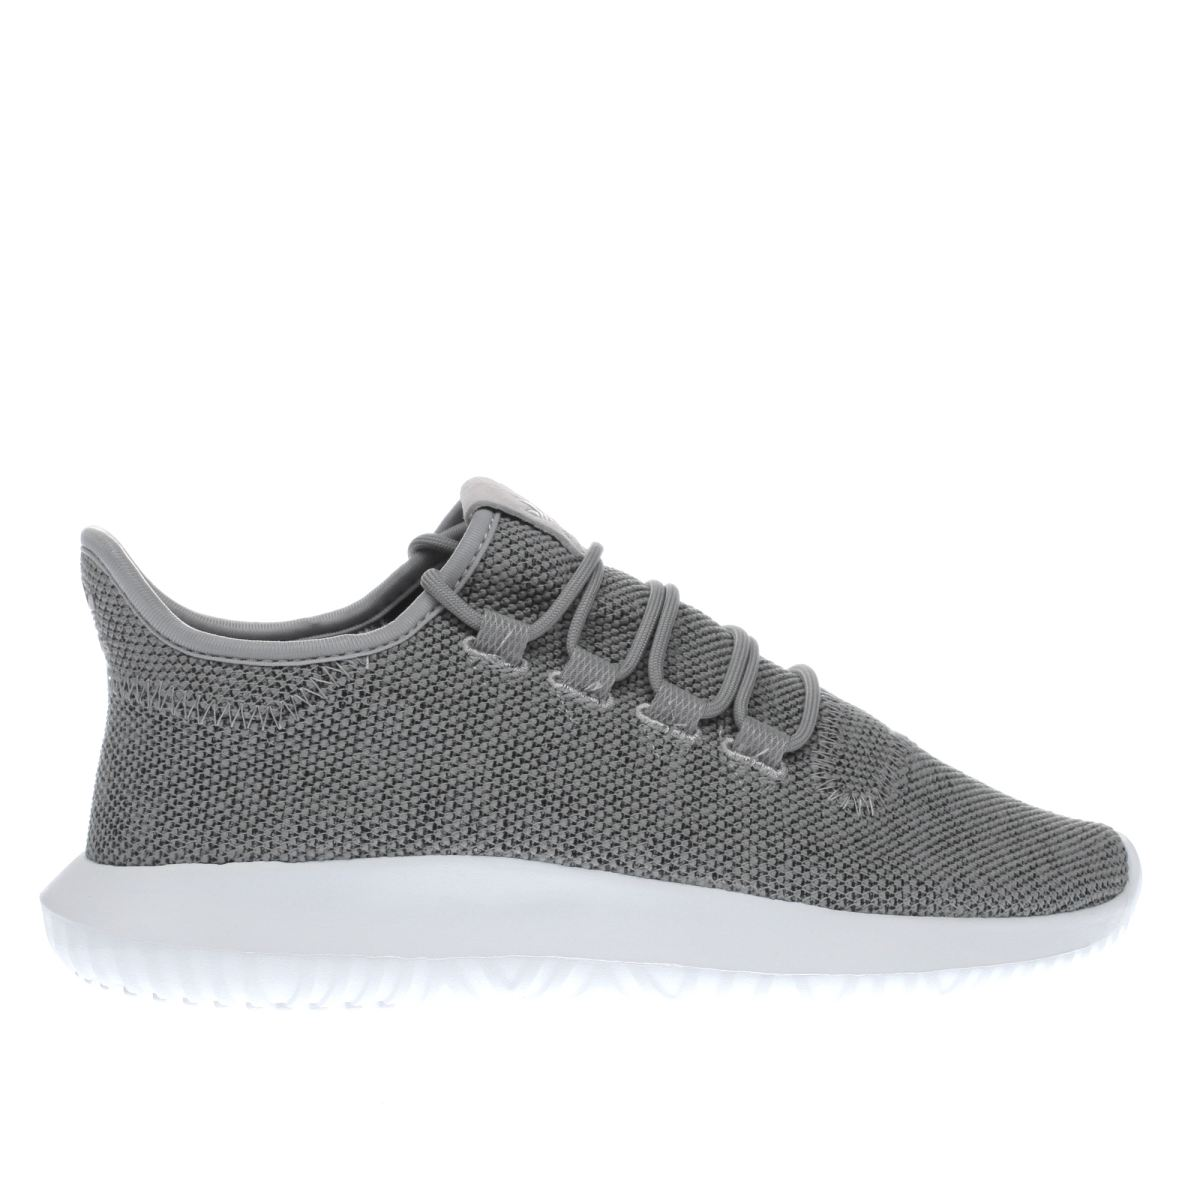 Adidas Tubular Women Shoes